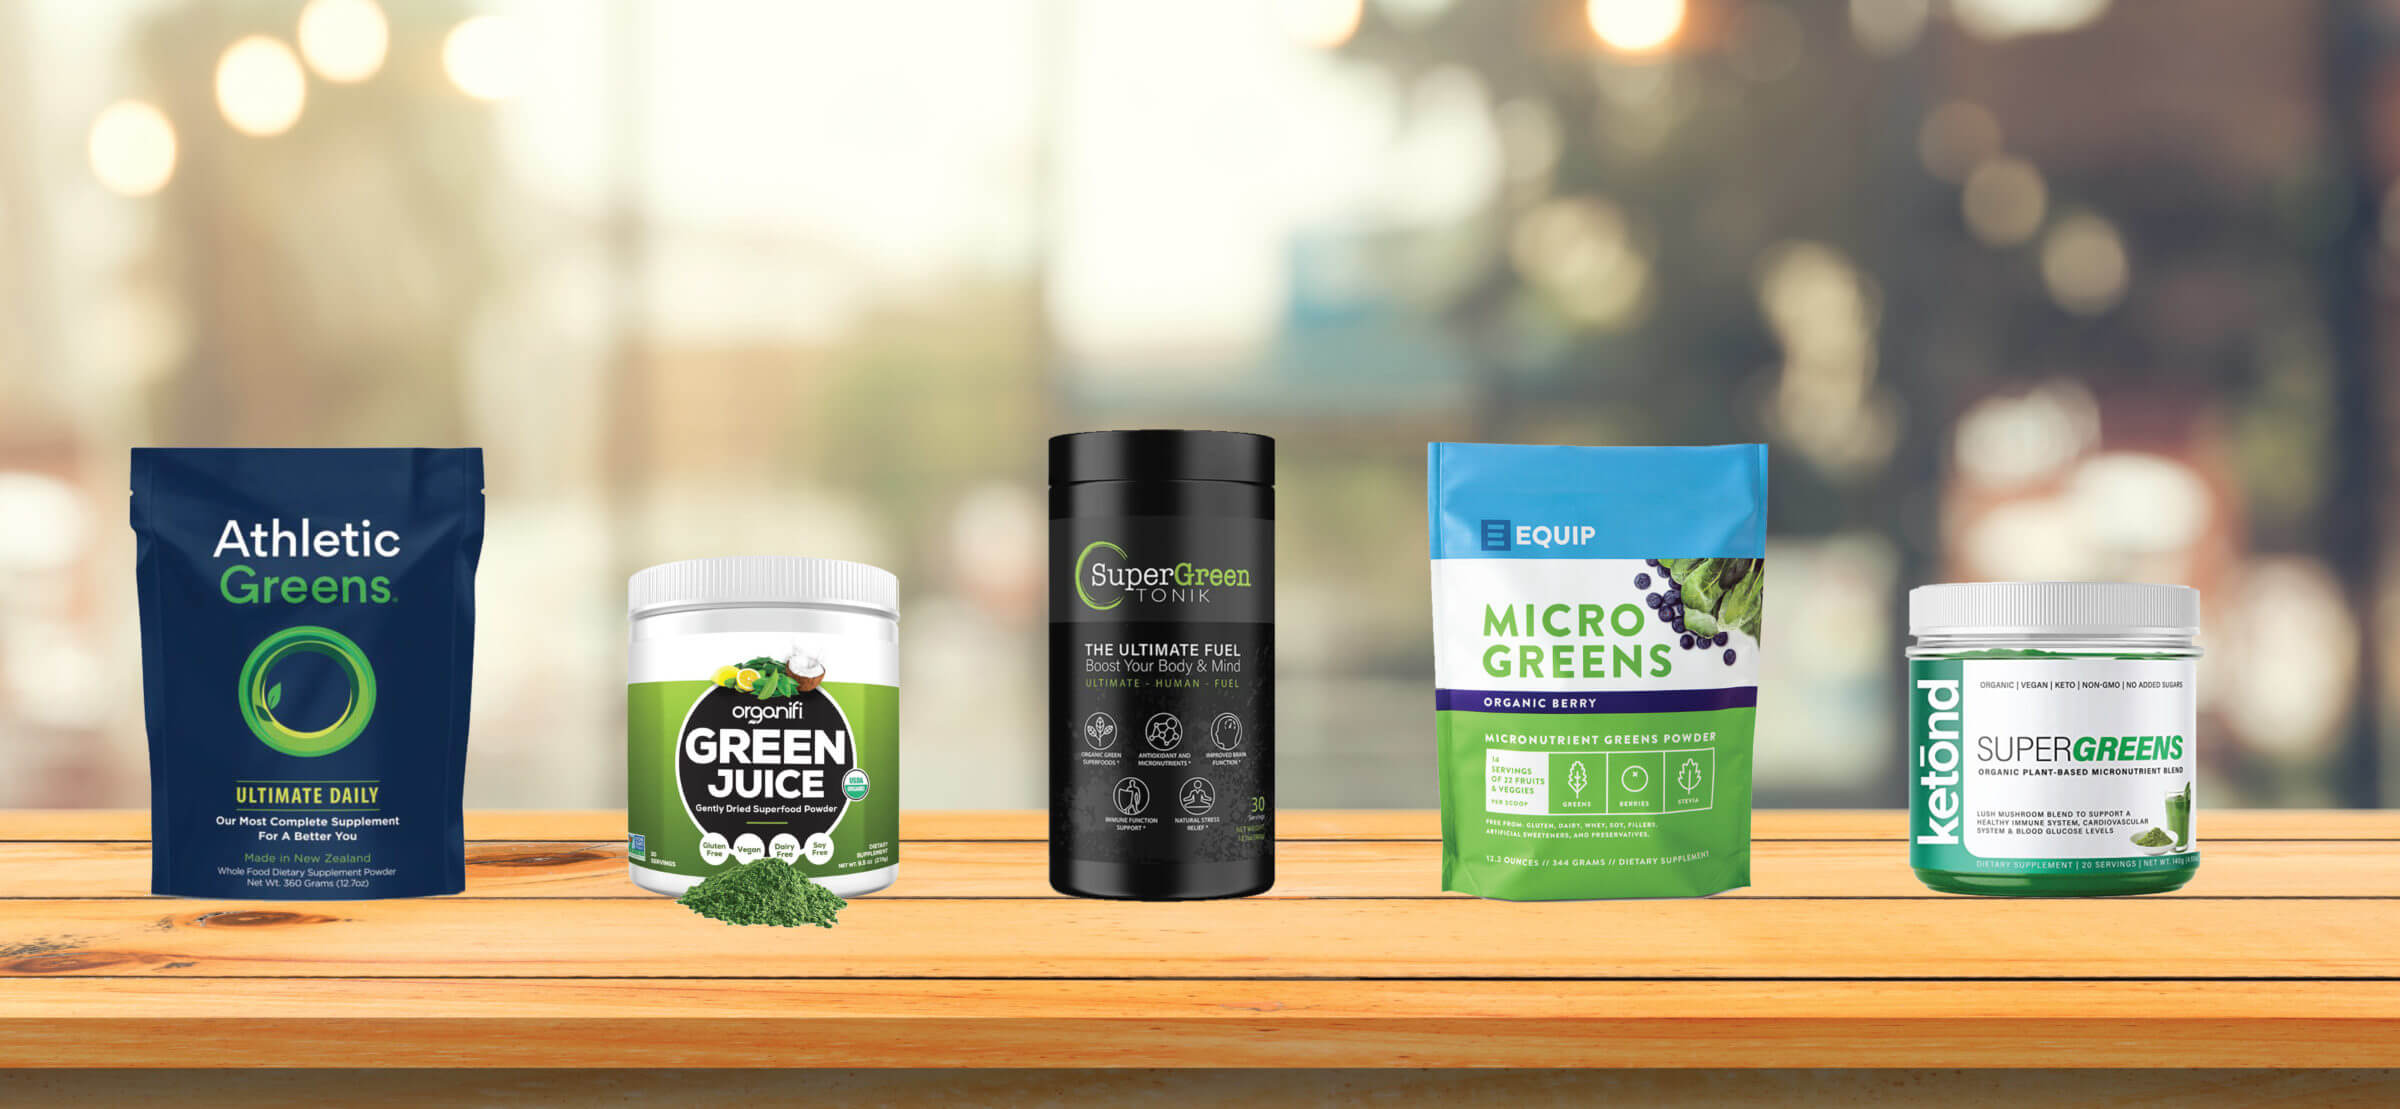 Best Superfood Green Powder in 2020